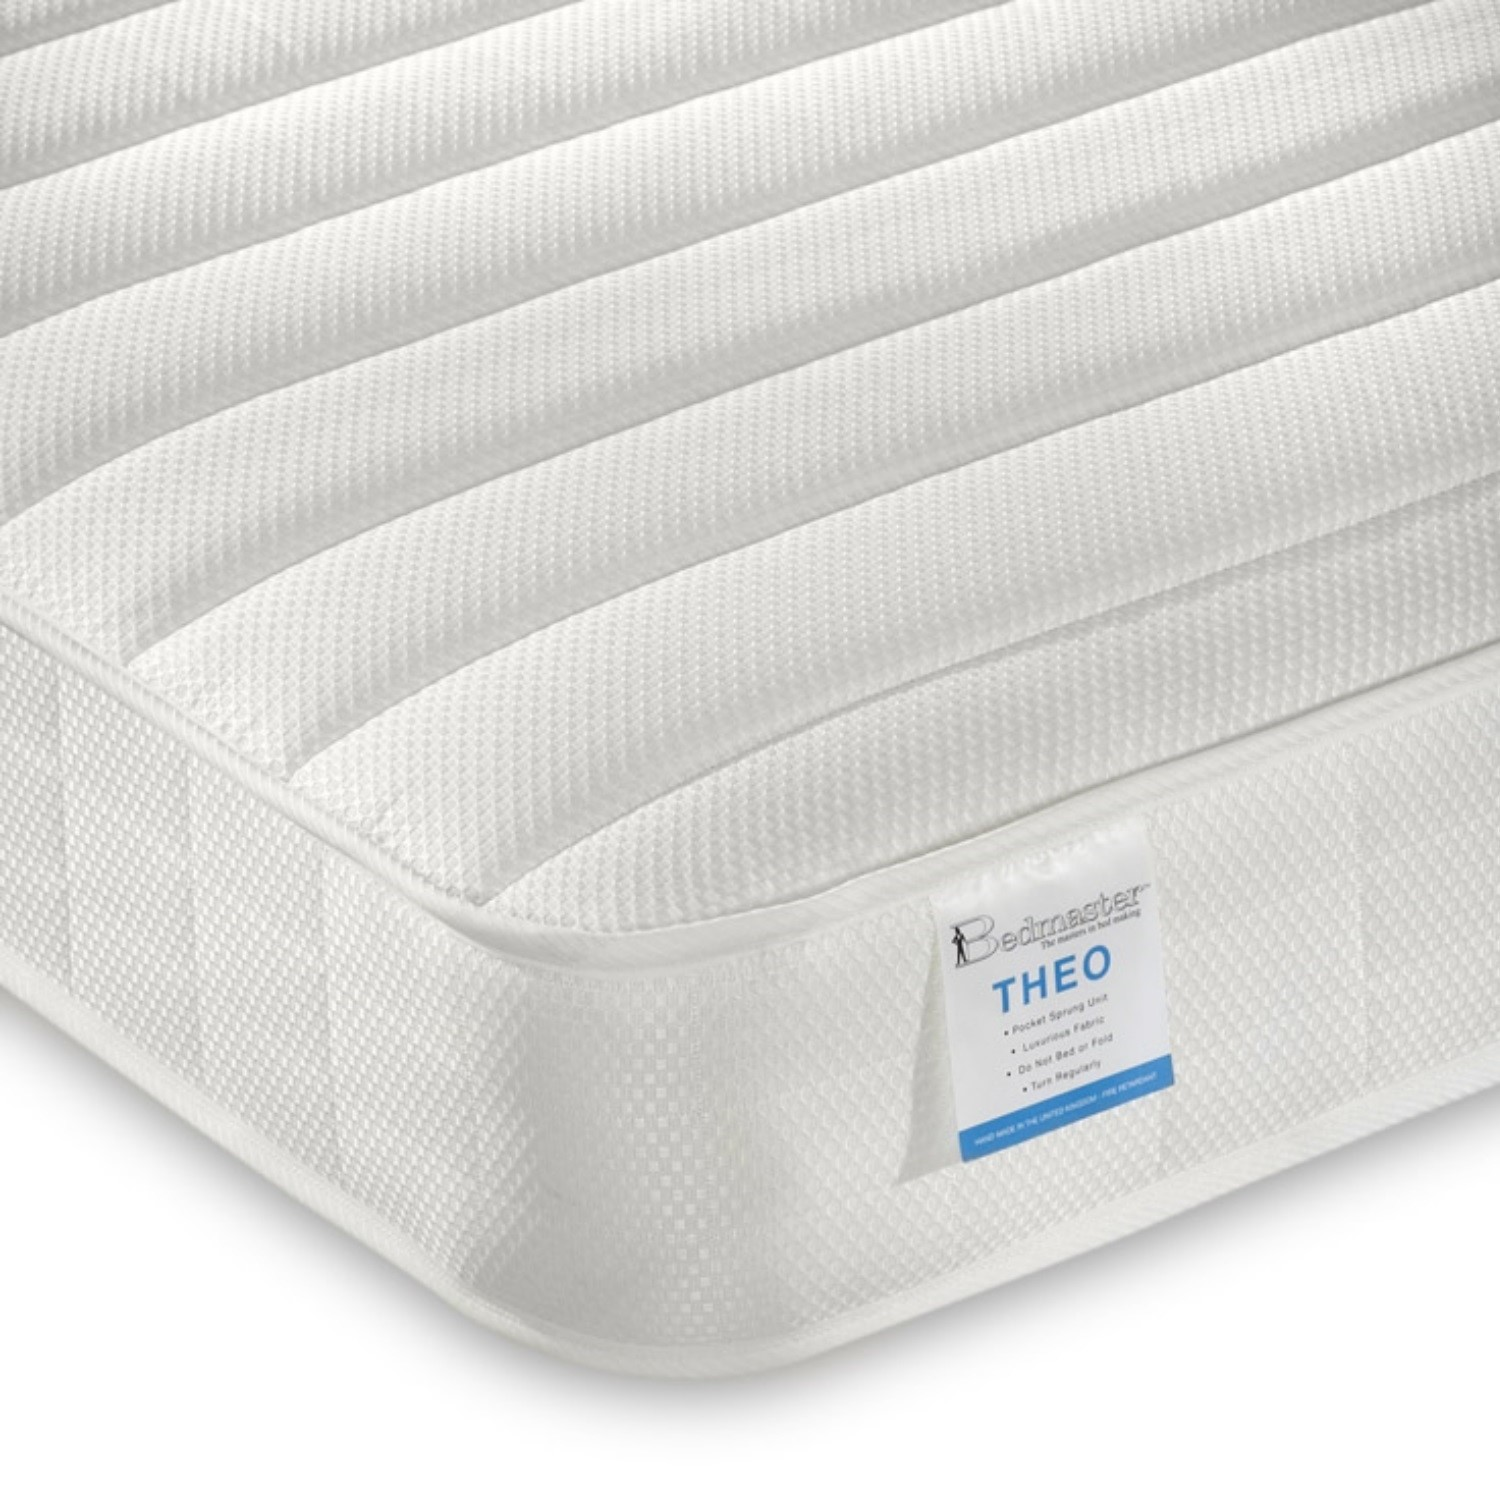 Theo pocket sprung low profile mattress small single